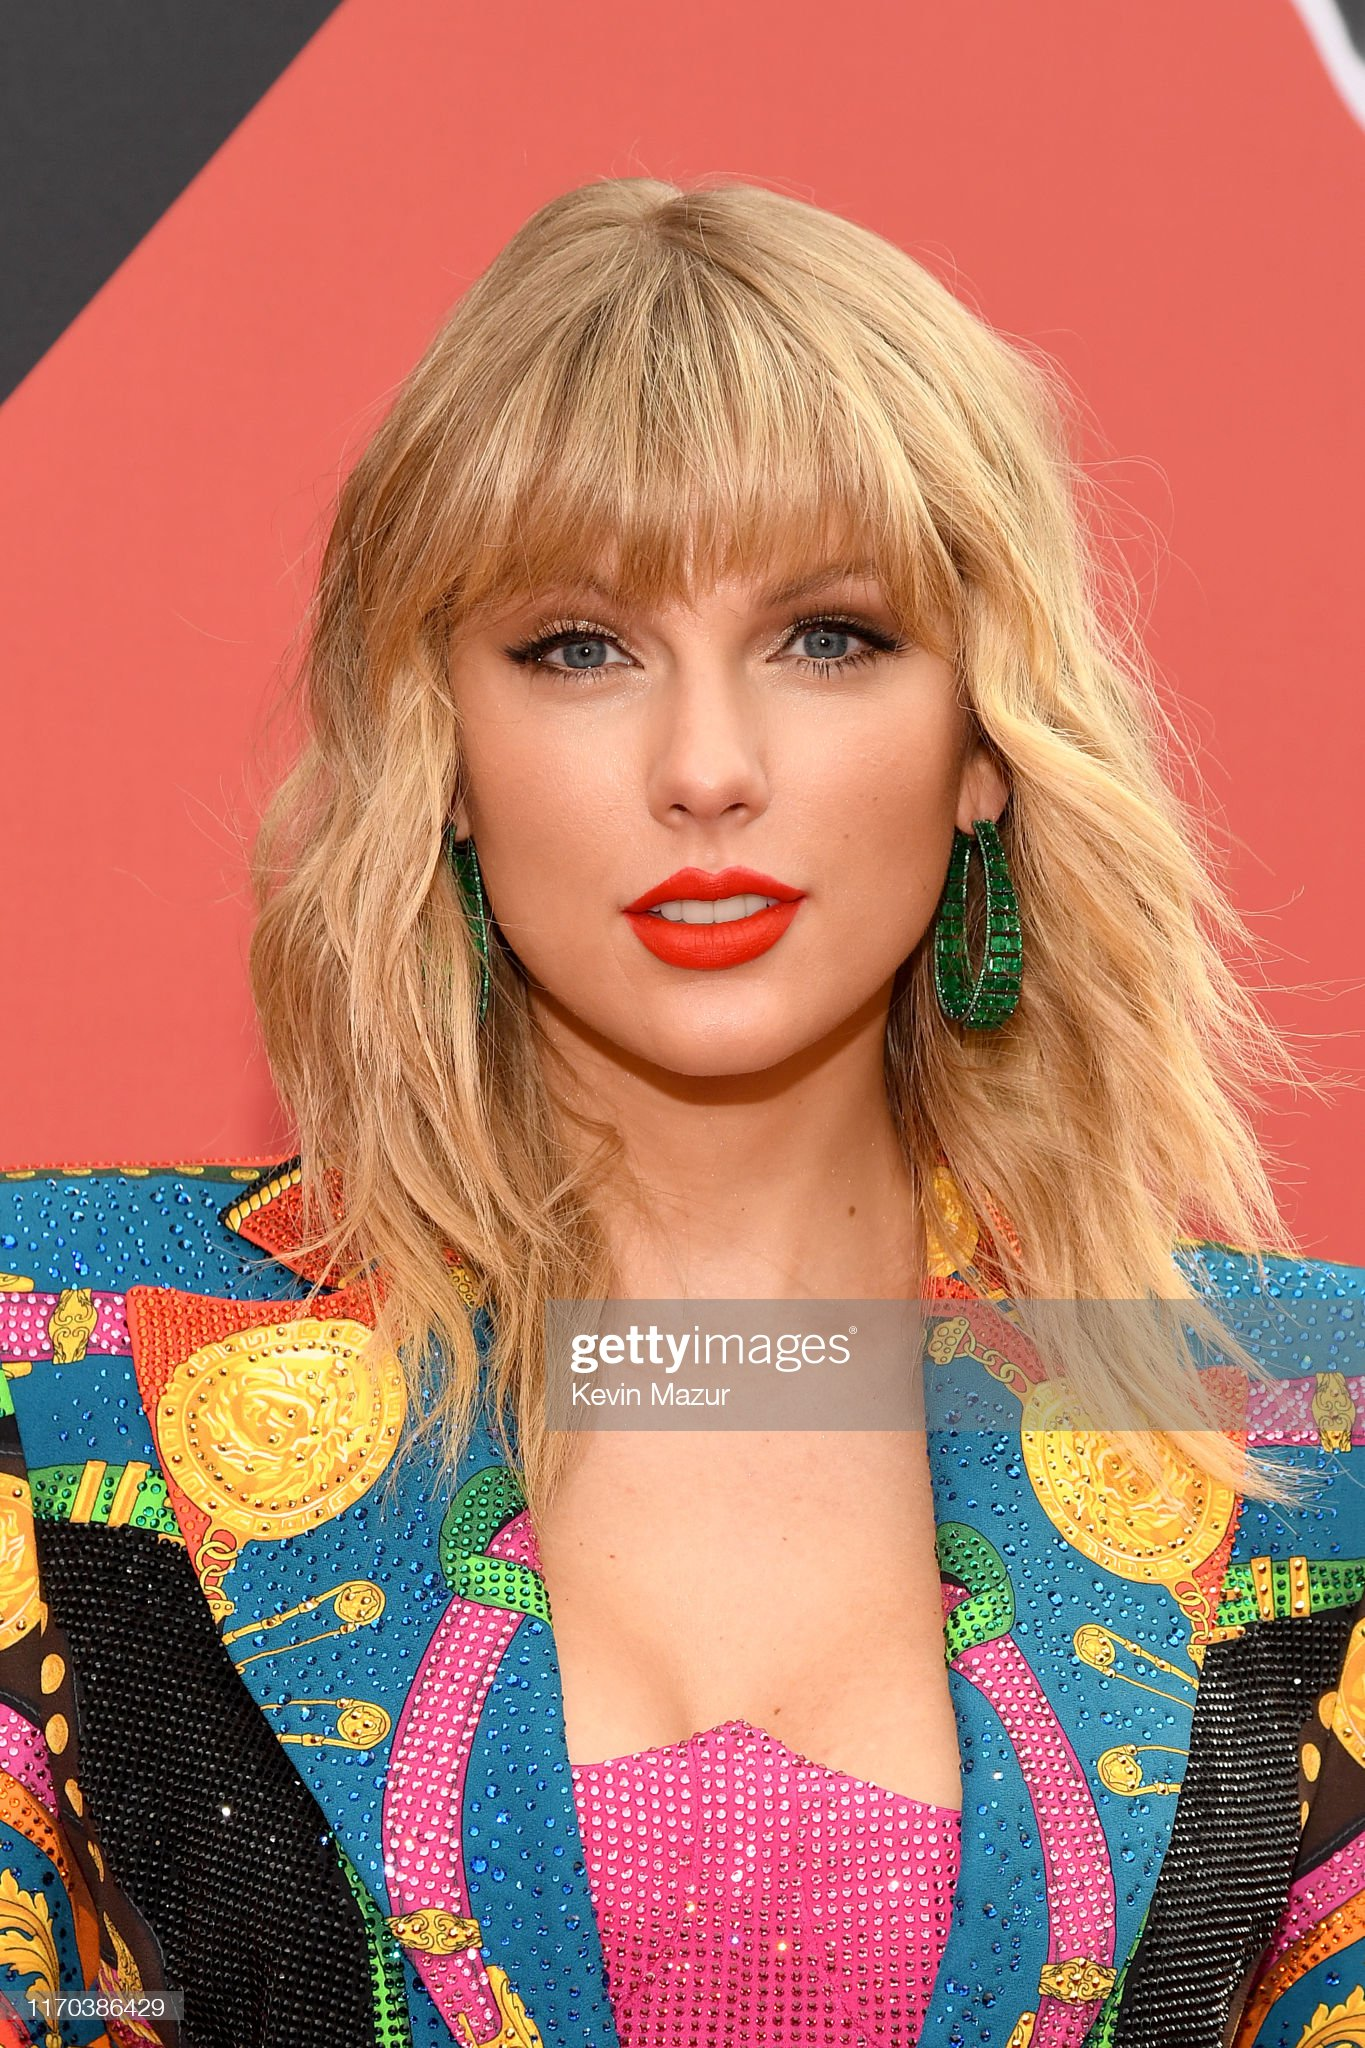 Ojos azules - personas famosas con los ojos de color AZUL Taylor-swift-attends-the-2019-mtv-video-music-awards-at-prudential-picture-id1170386429?s=2048x2048